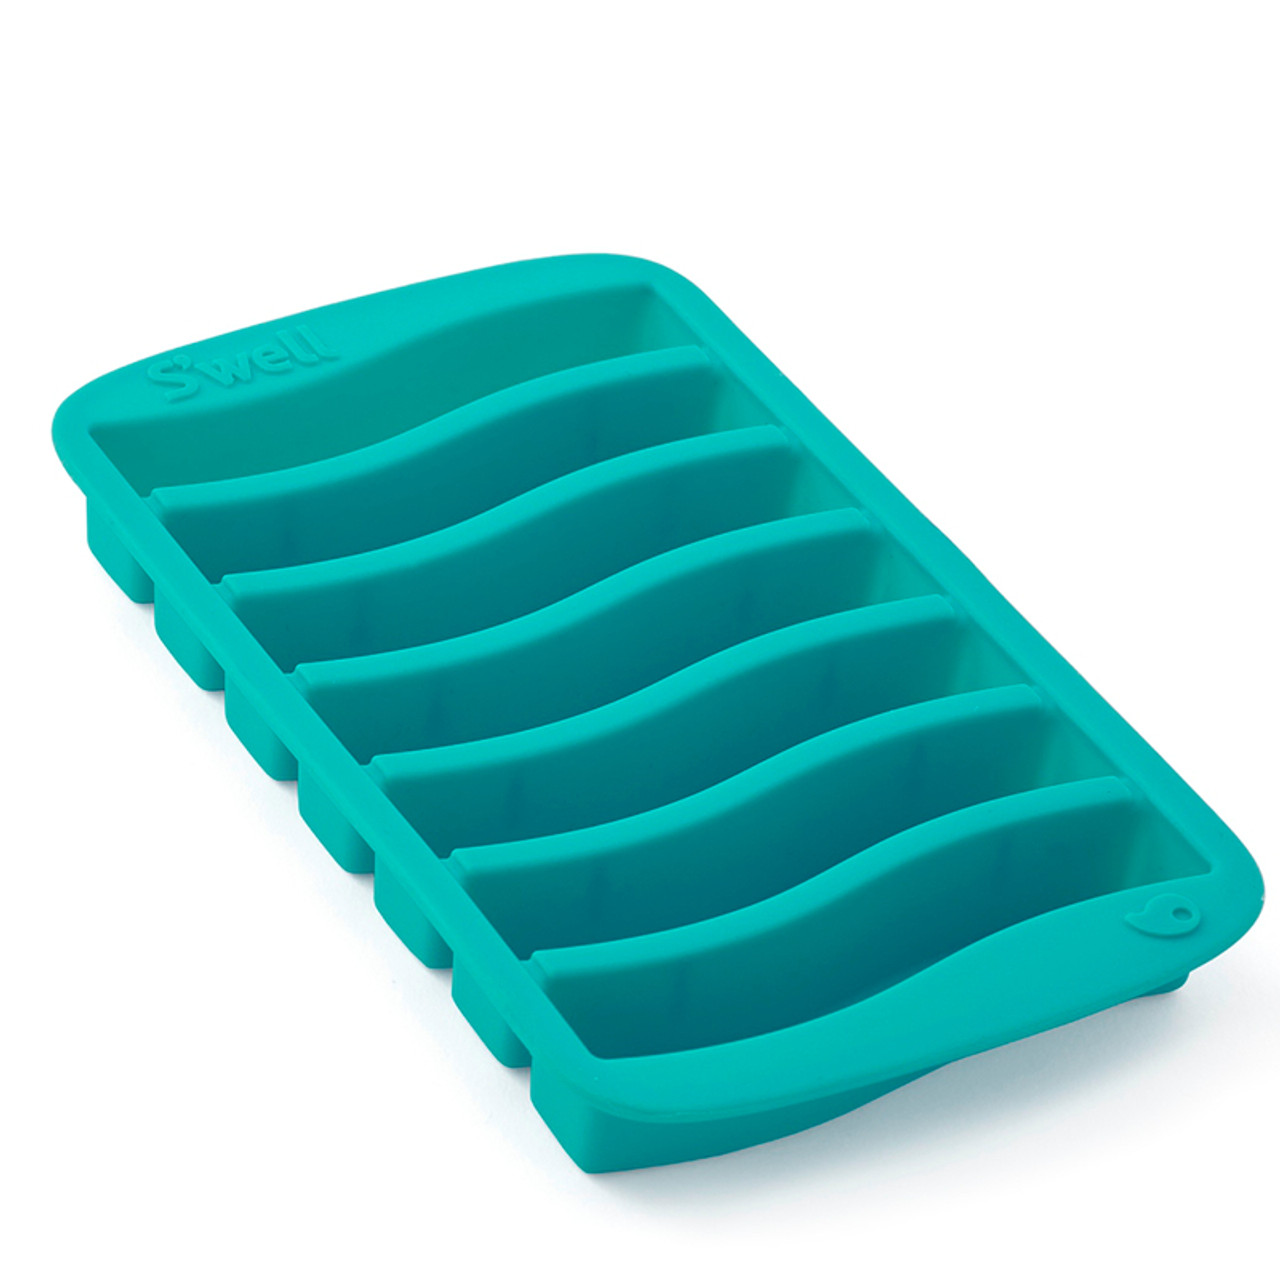 S'WELL SUPER ICE CHILL TRAY